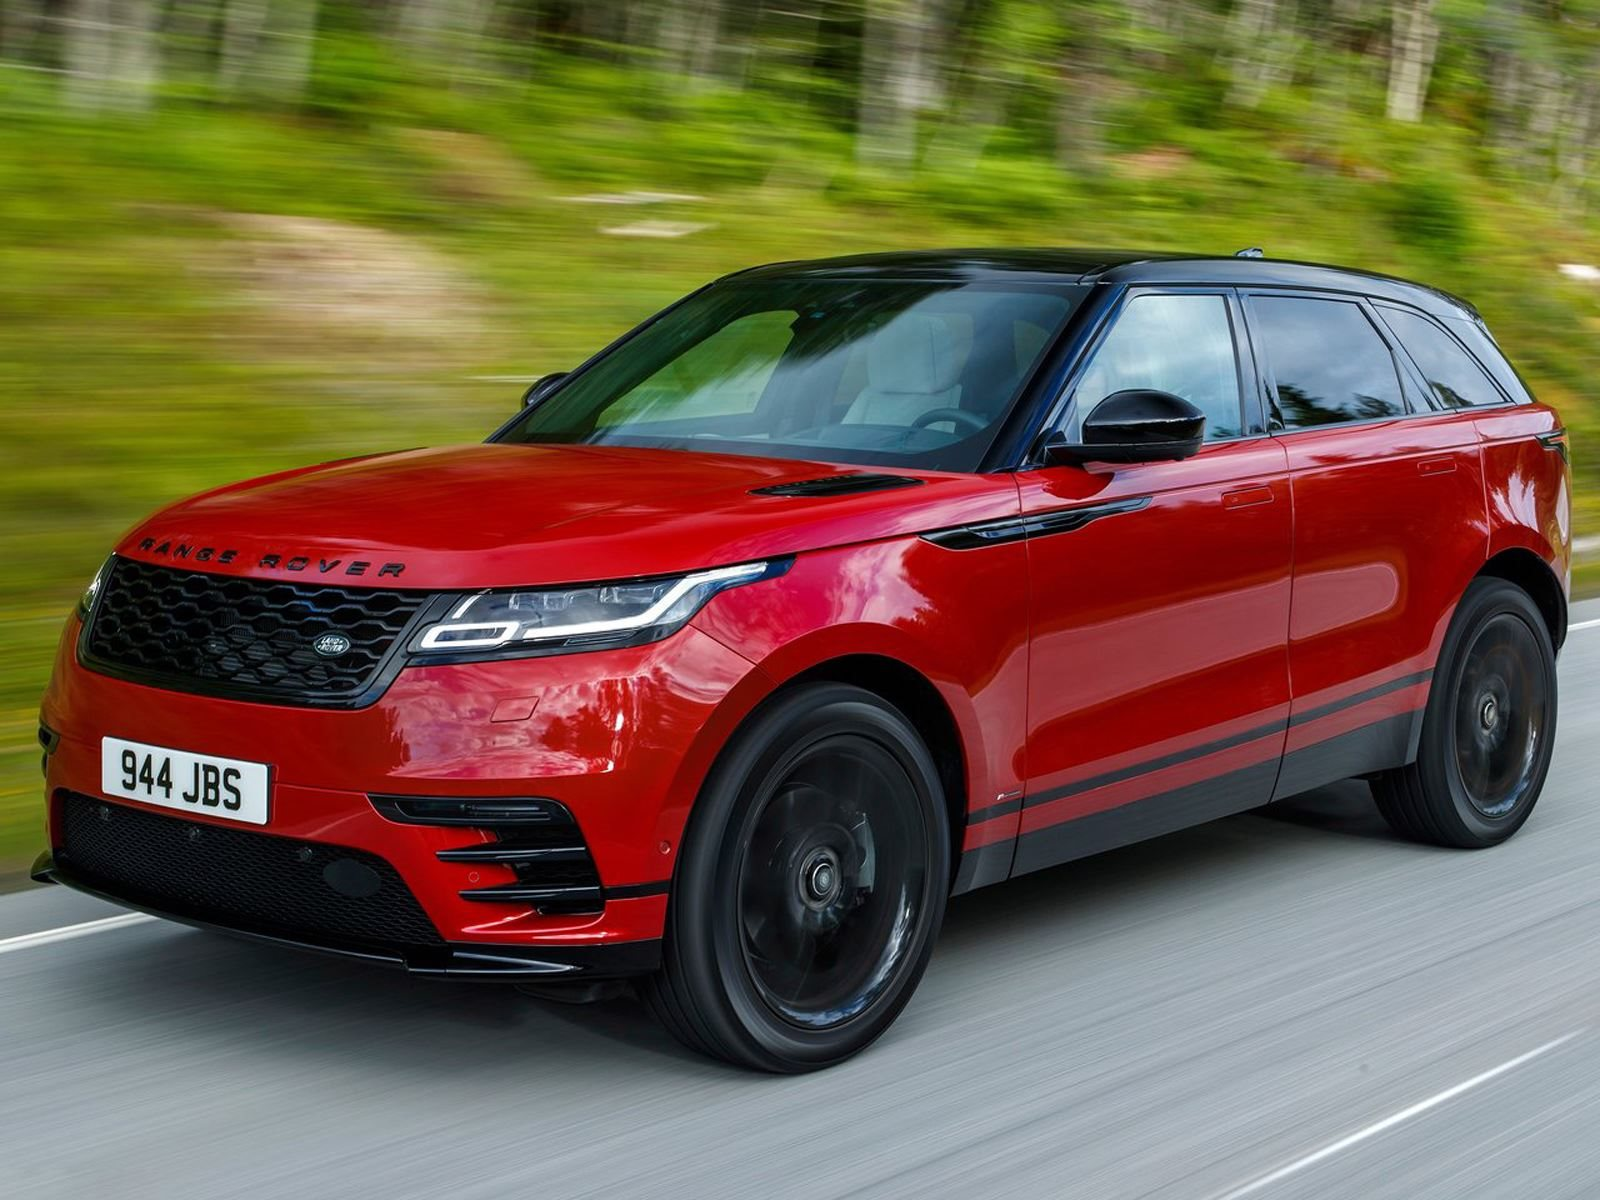 2019 Range Rover Velar SVR: News, Specs, Price >> Of Course A Land Rover Range Rover Velar Svr Is Coming Soon Carbuzz